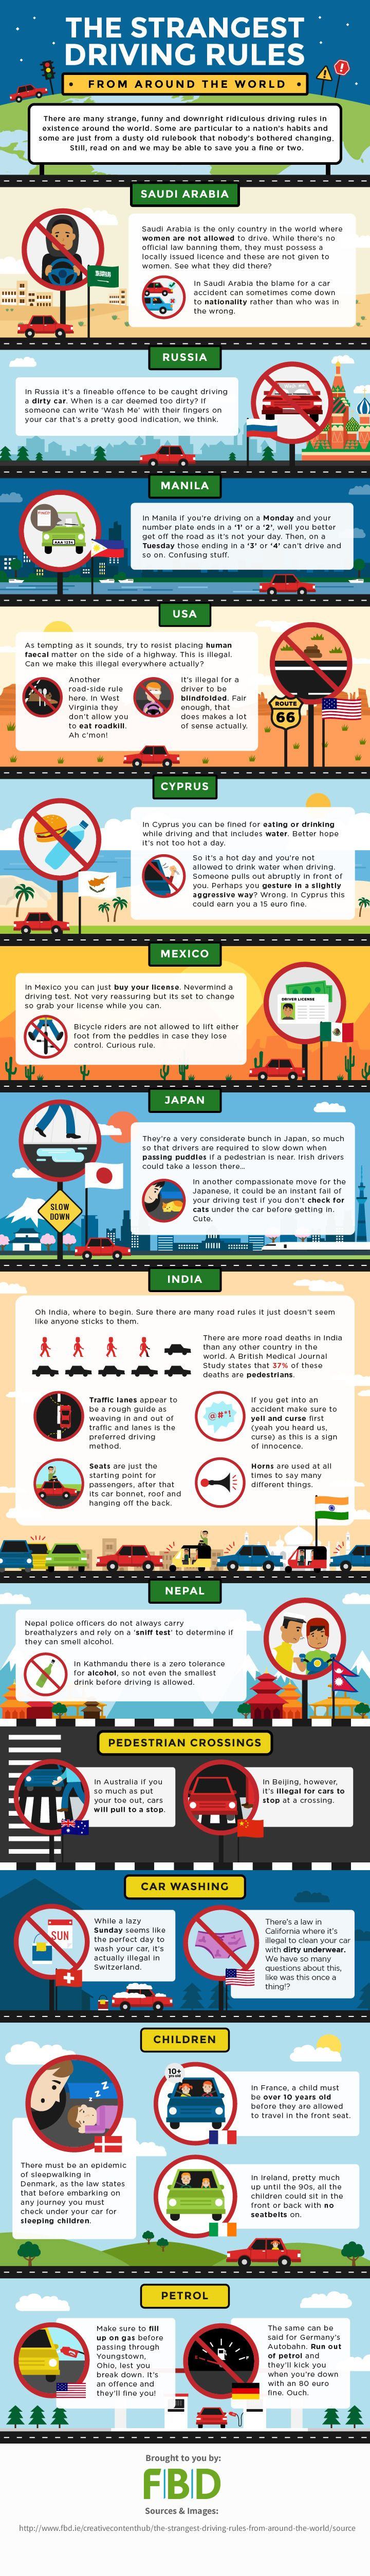 The Strangest Driving Rules From Around The World #Infographic